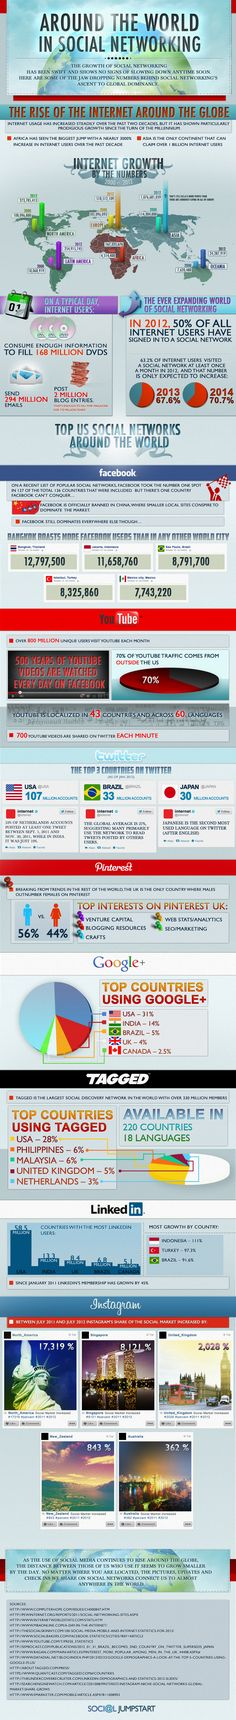 Social media is trending globally. Check out this infographic to learn about how quickly social media has become prominent around the world. 'Around the world in social networking' #infograpic by Social Jumpstart and Hasai